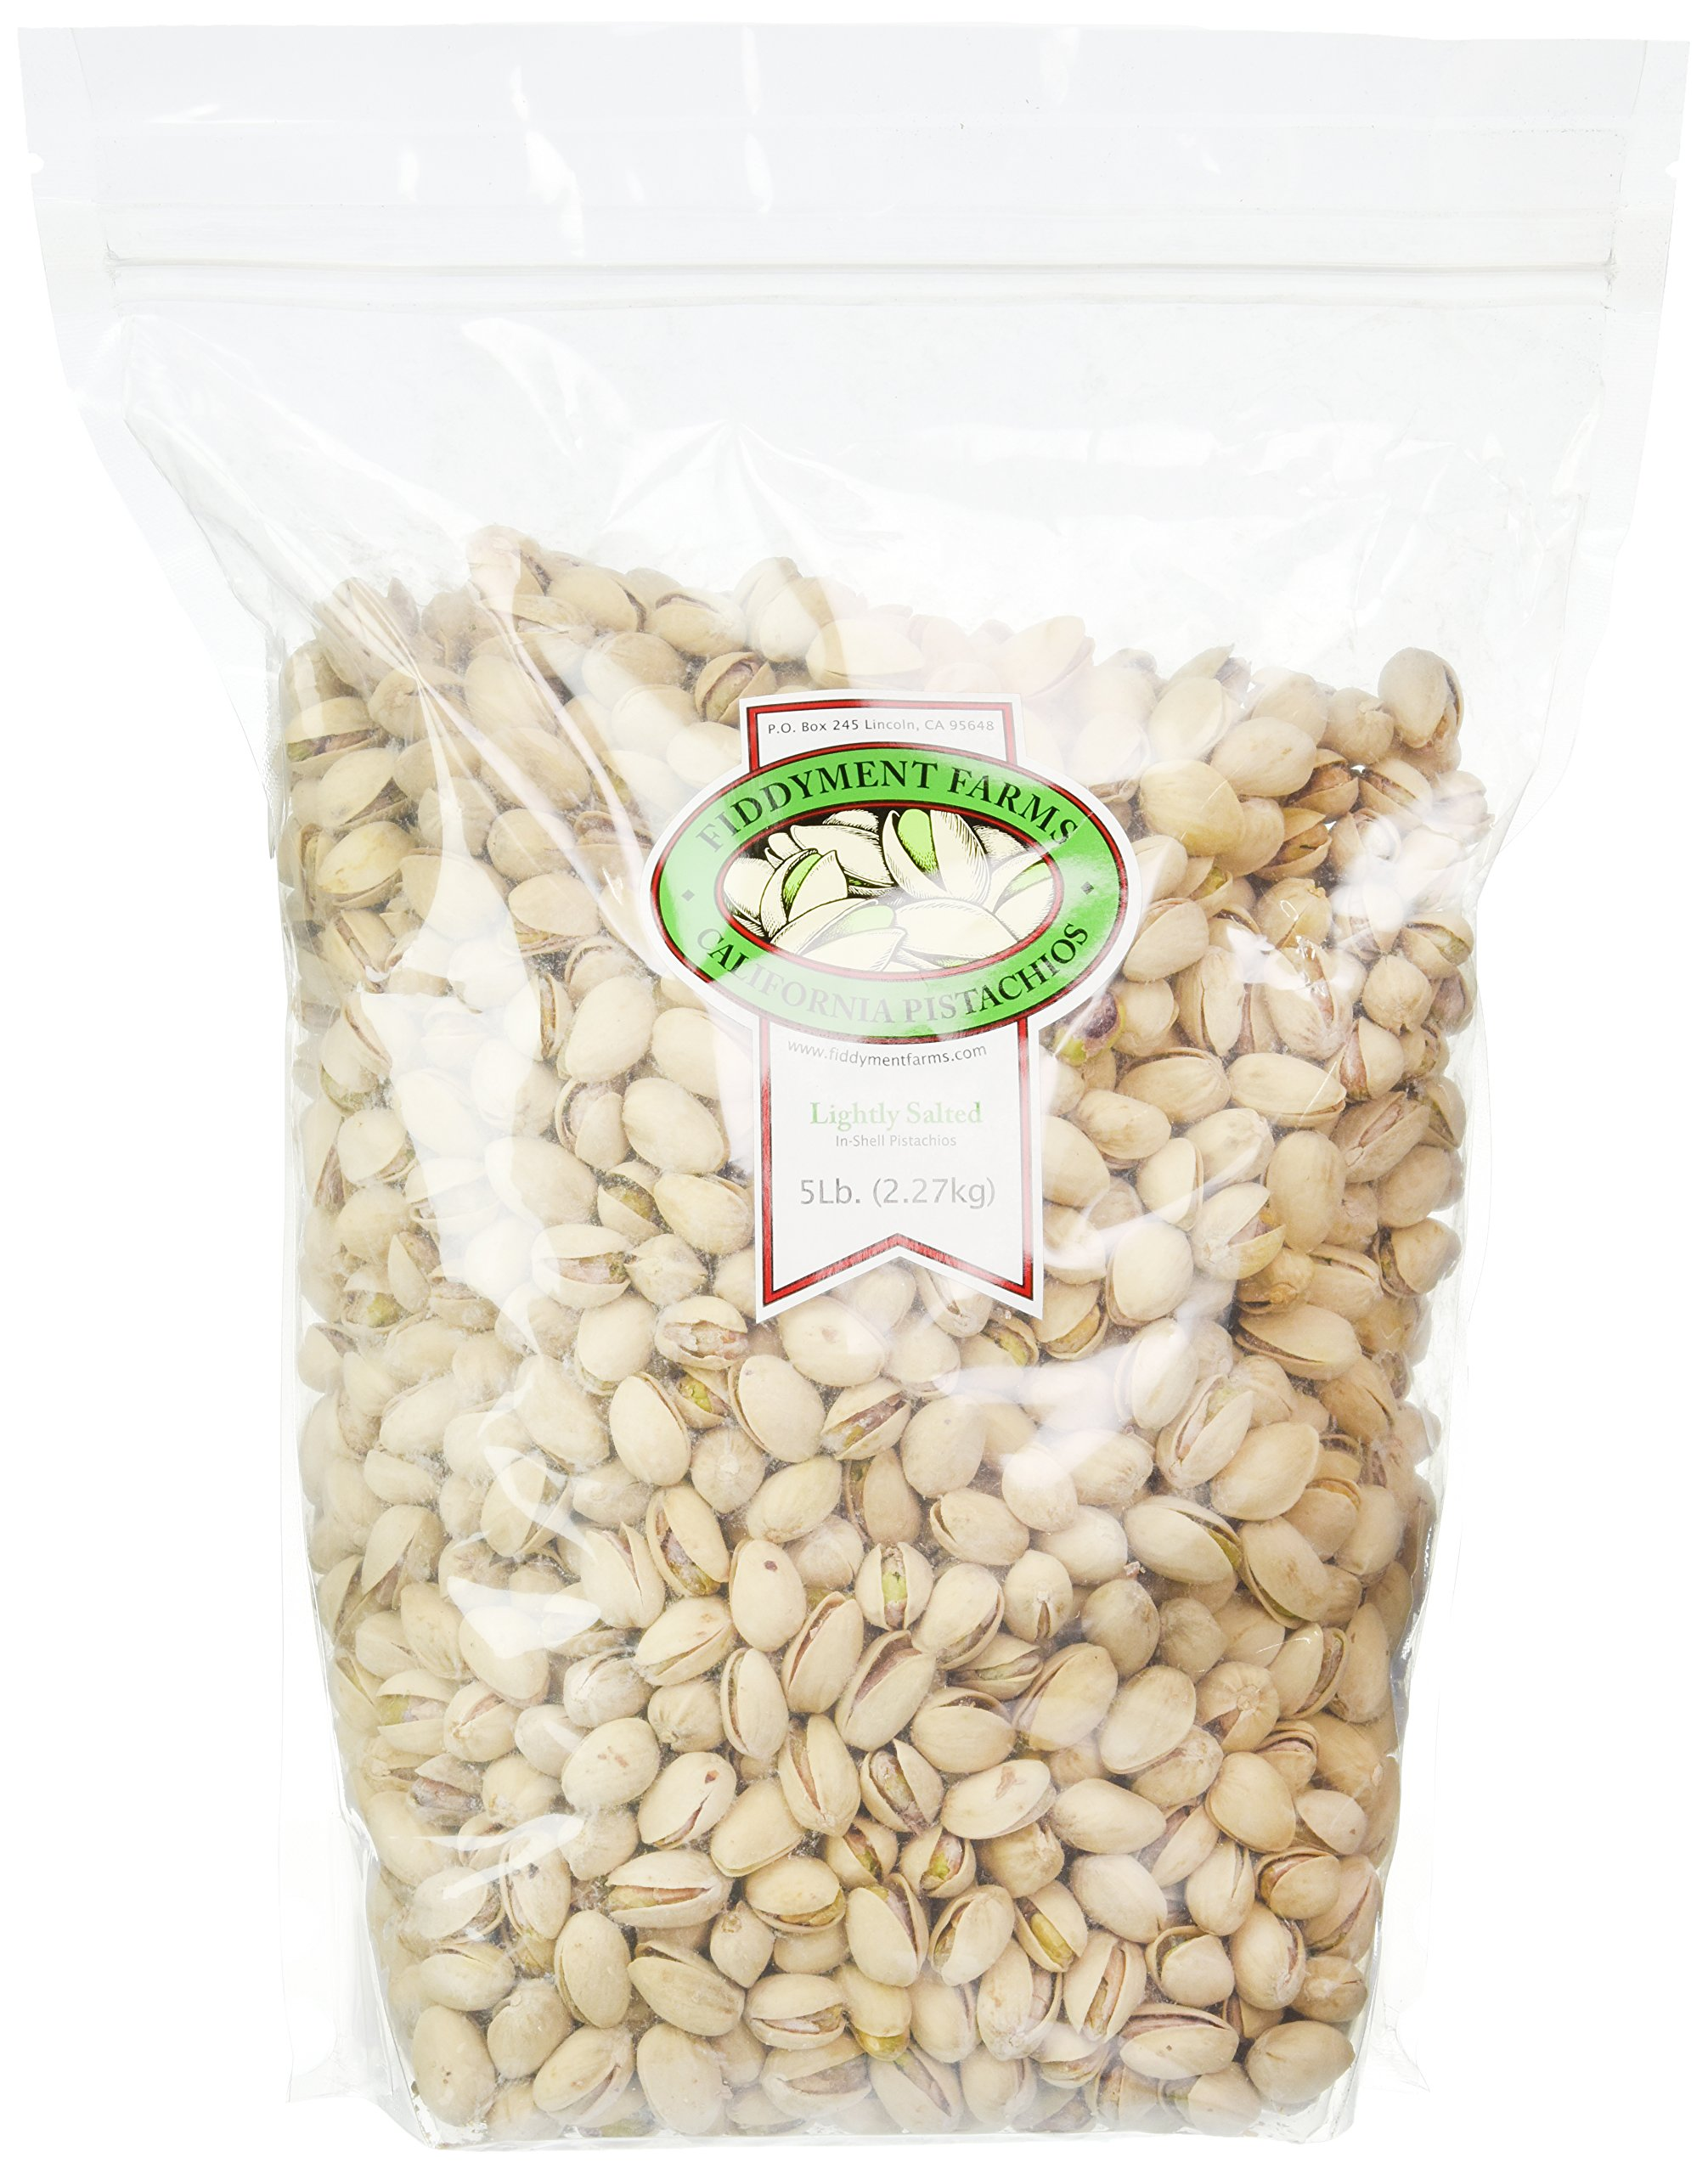 Fiddyment Farms 5 LB. In-Shell Lightly Salted